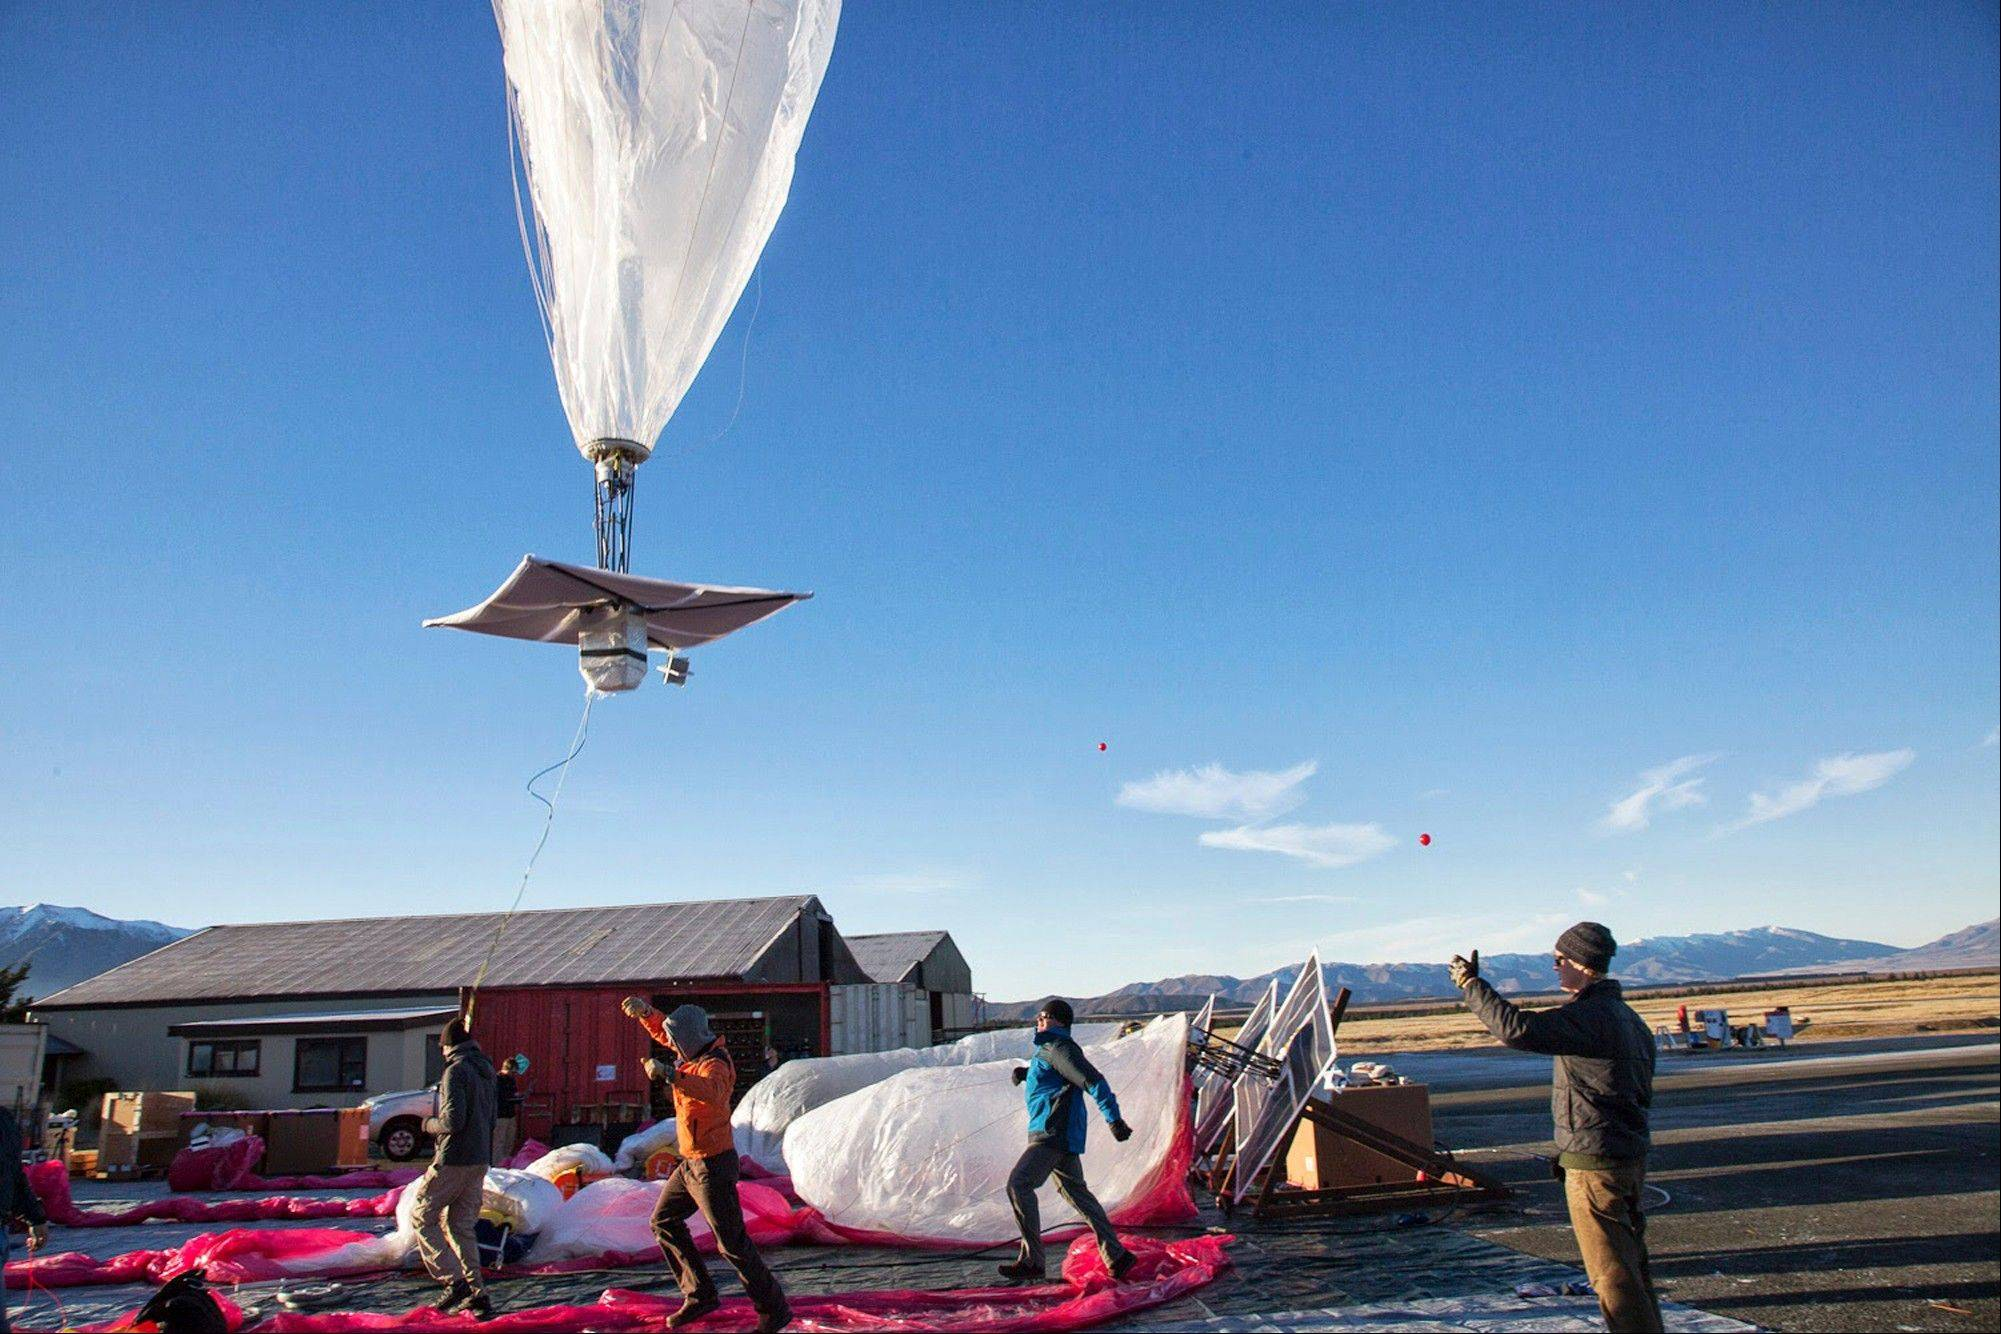 A Google team releases a balloon last week in Tekapo, New Zealand. Google is testing the balloons which sail in the stratosphere and beam the Internet to Earth.